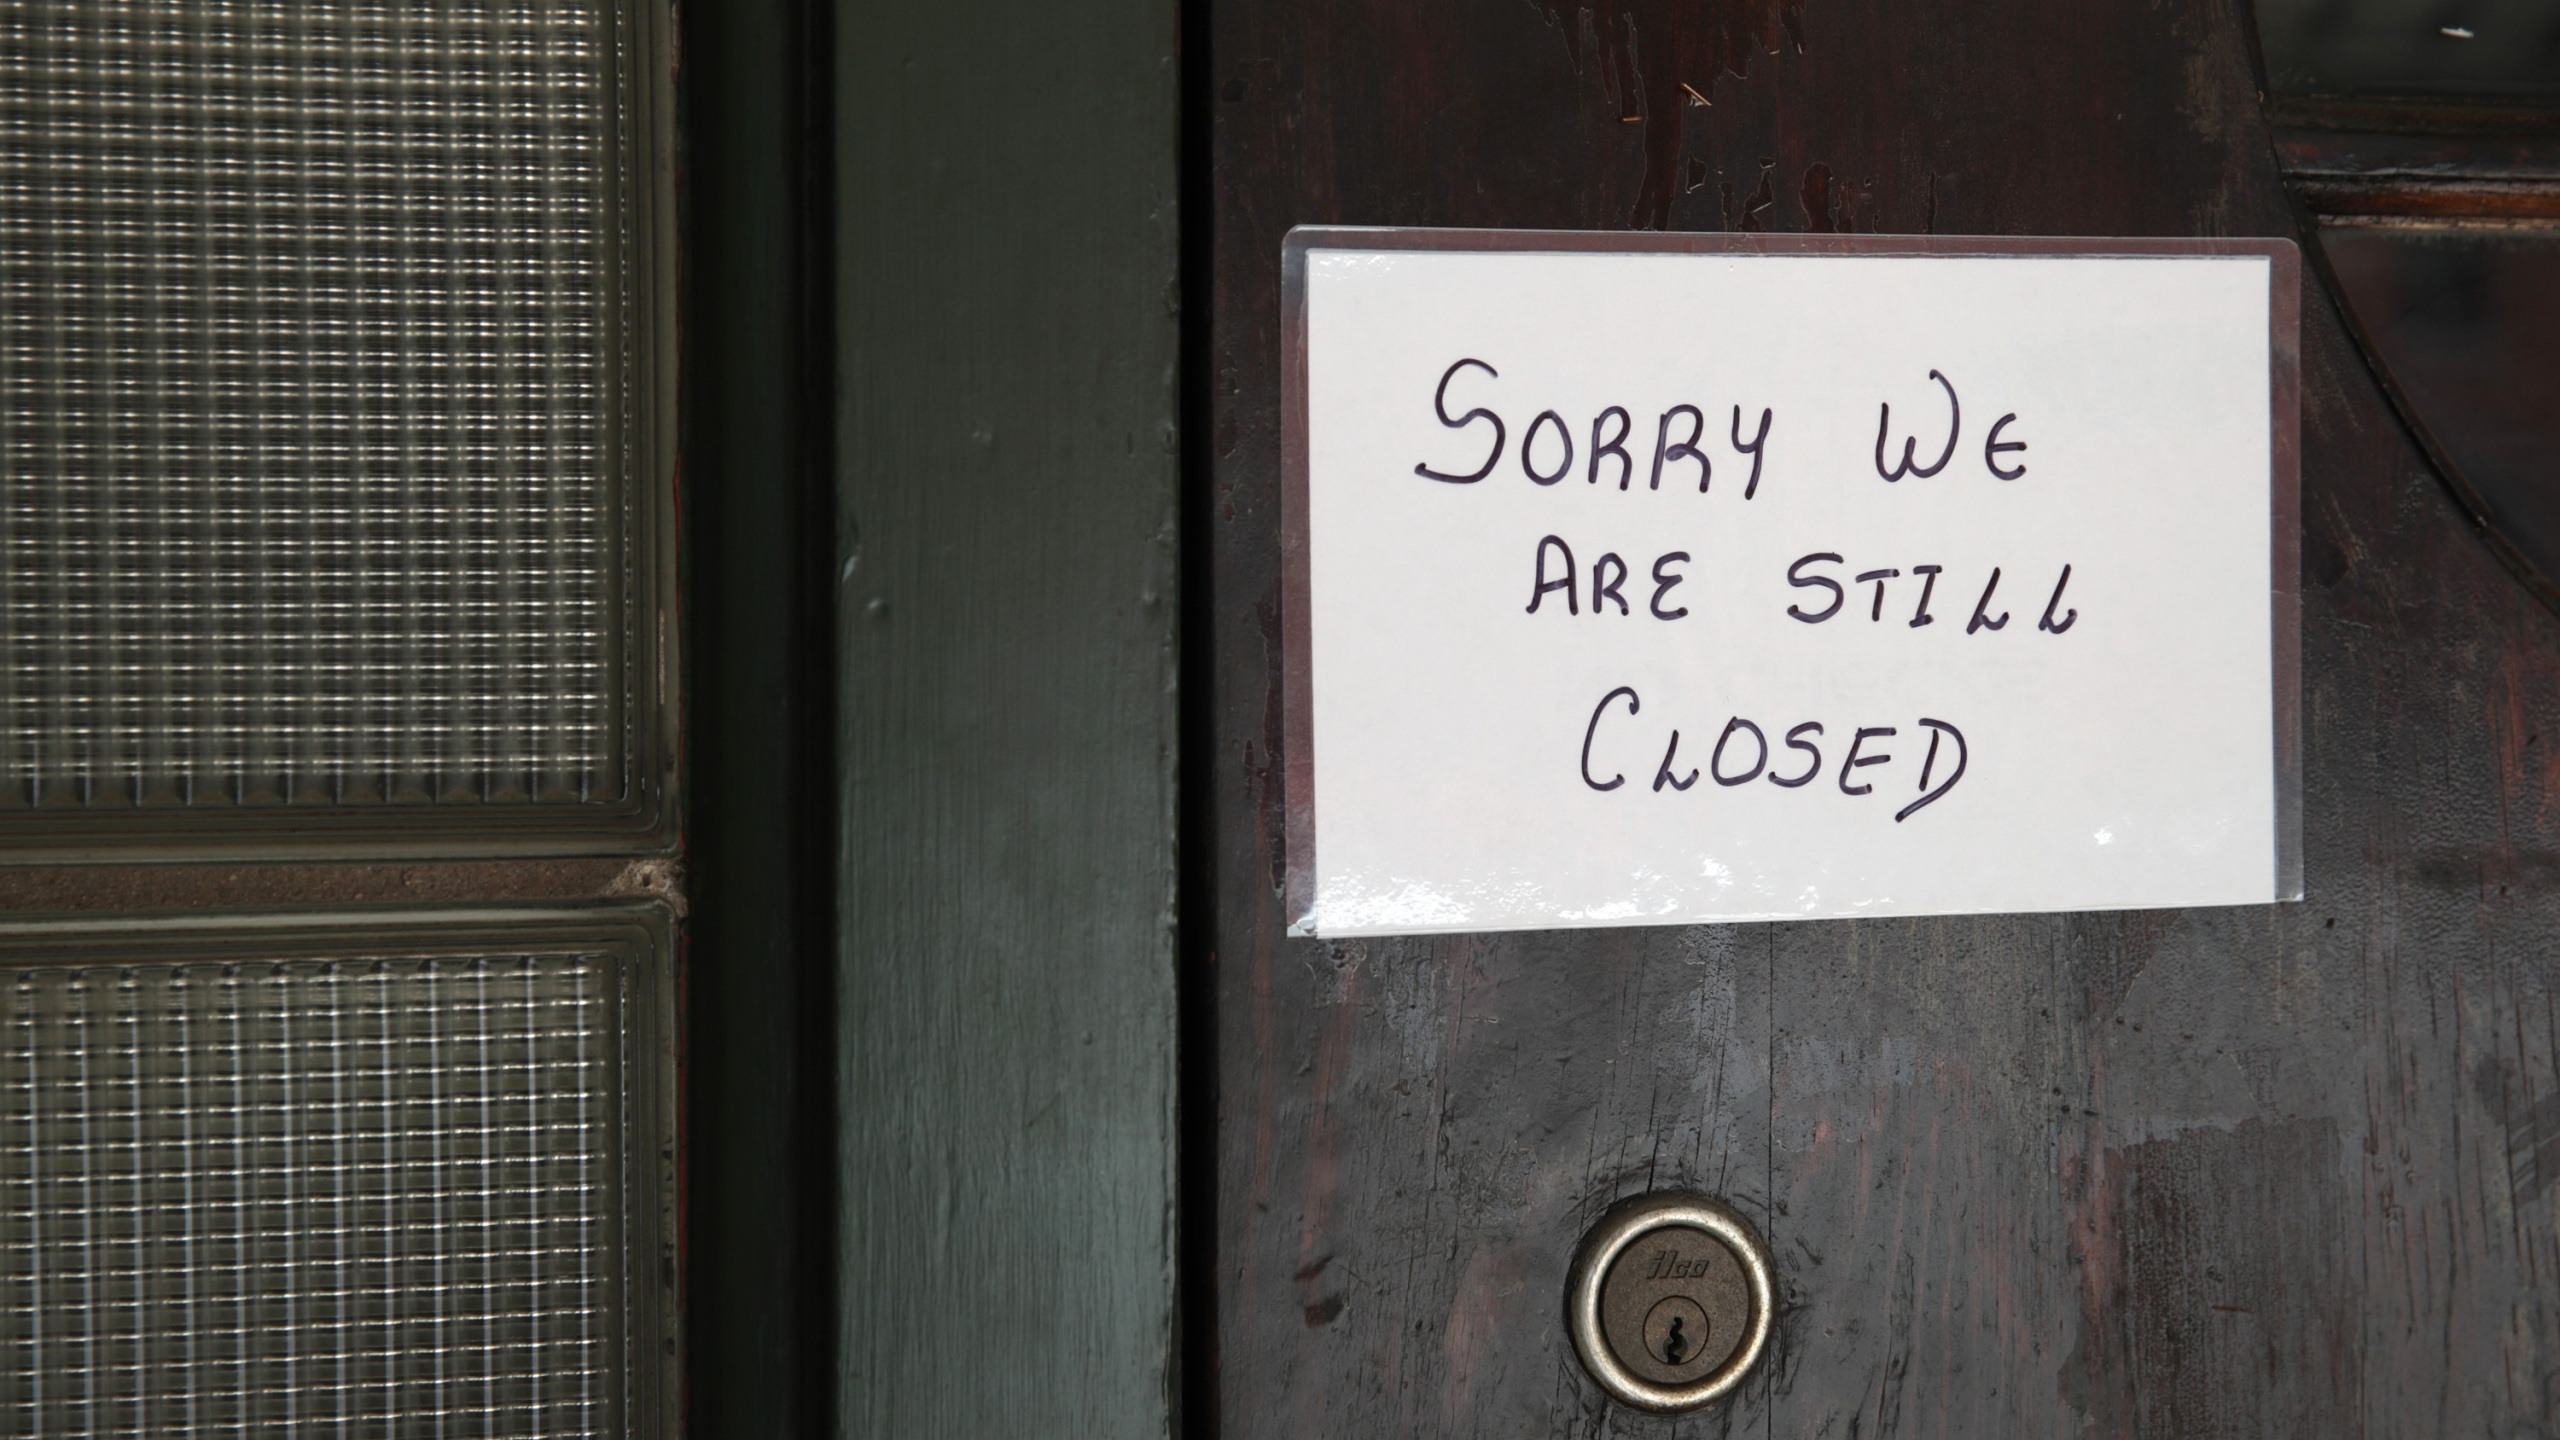 A sign on the door of Flannery's Tavern lets customers know the business is still closed on May 13, 2020, in Chesterton, Indiana. (Scott Olson/Getty Images)